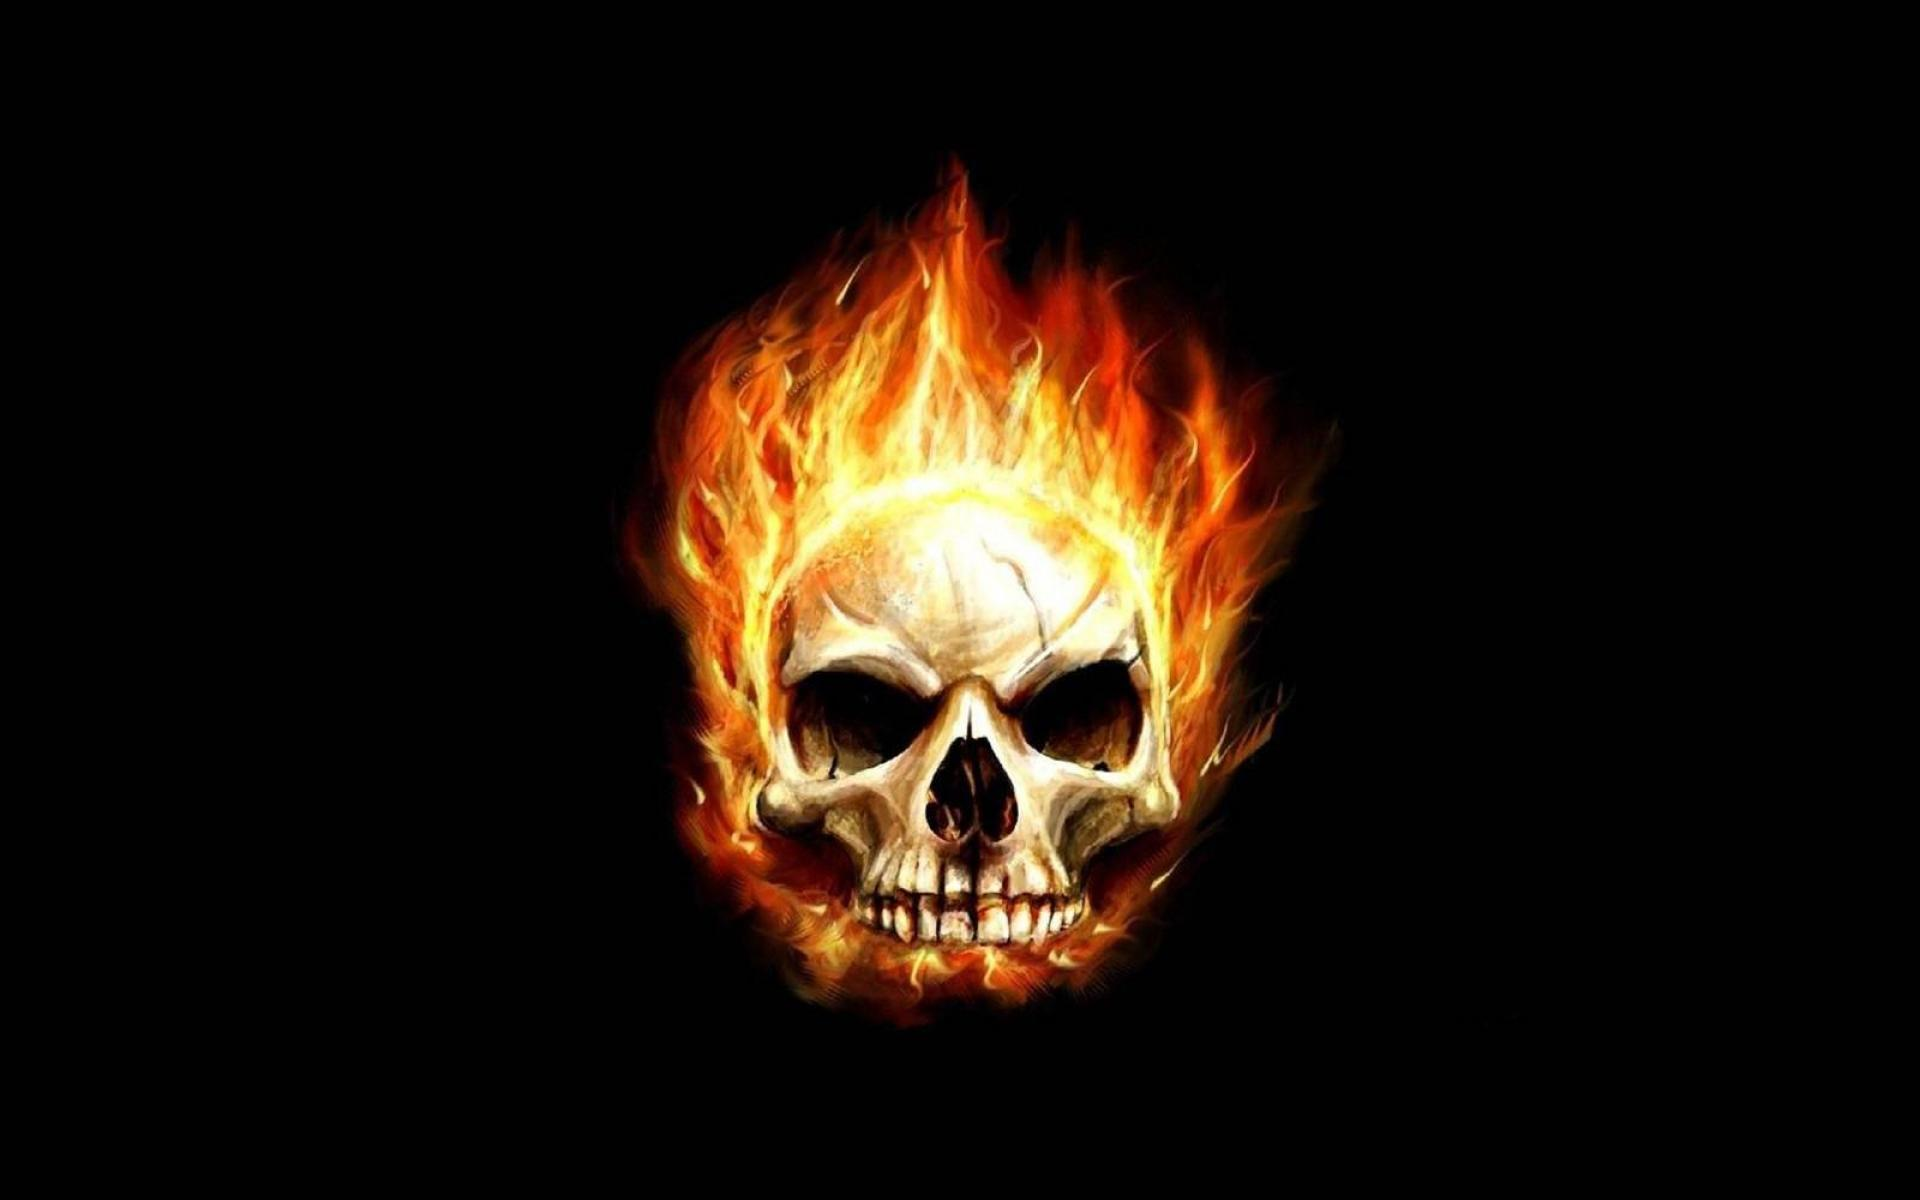 Skull Fire Wallpapers